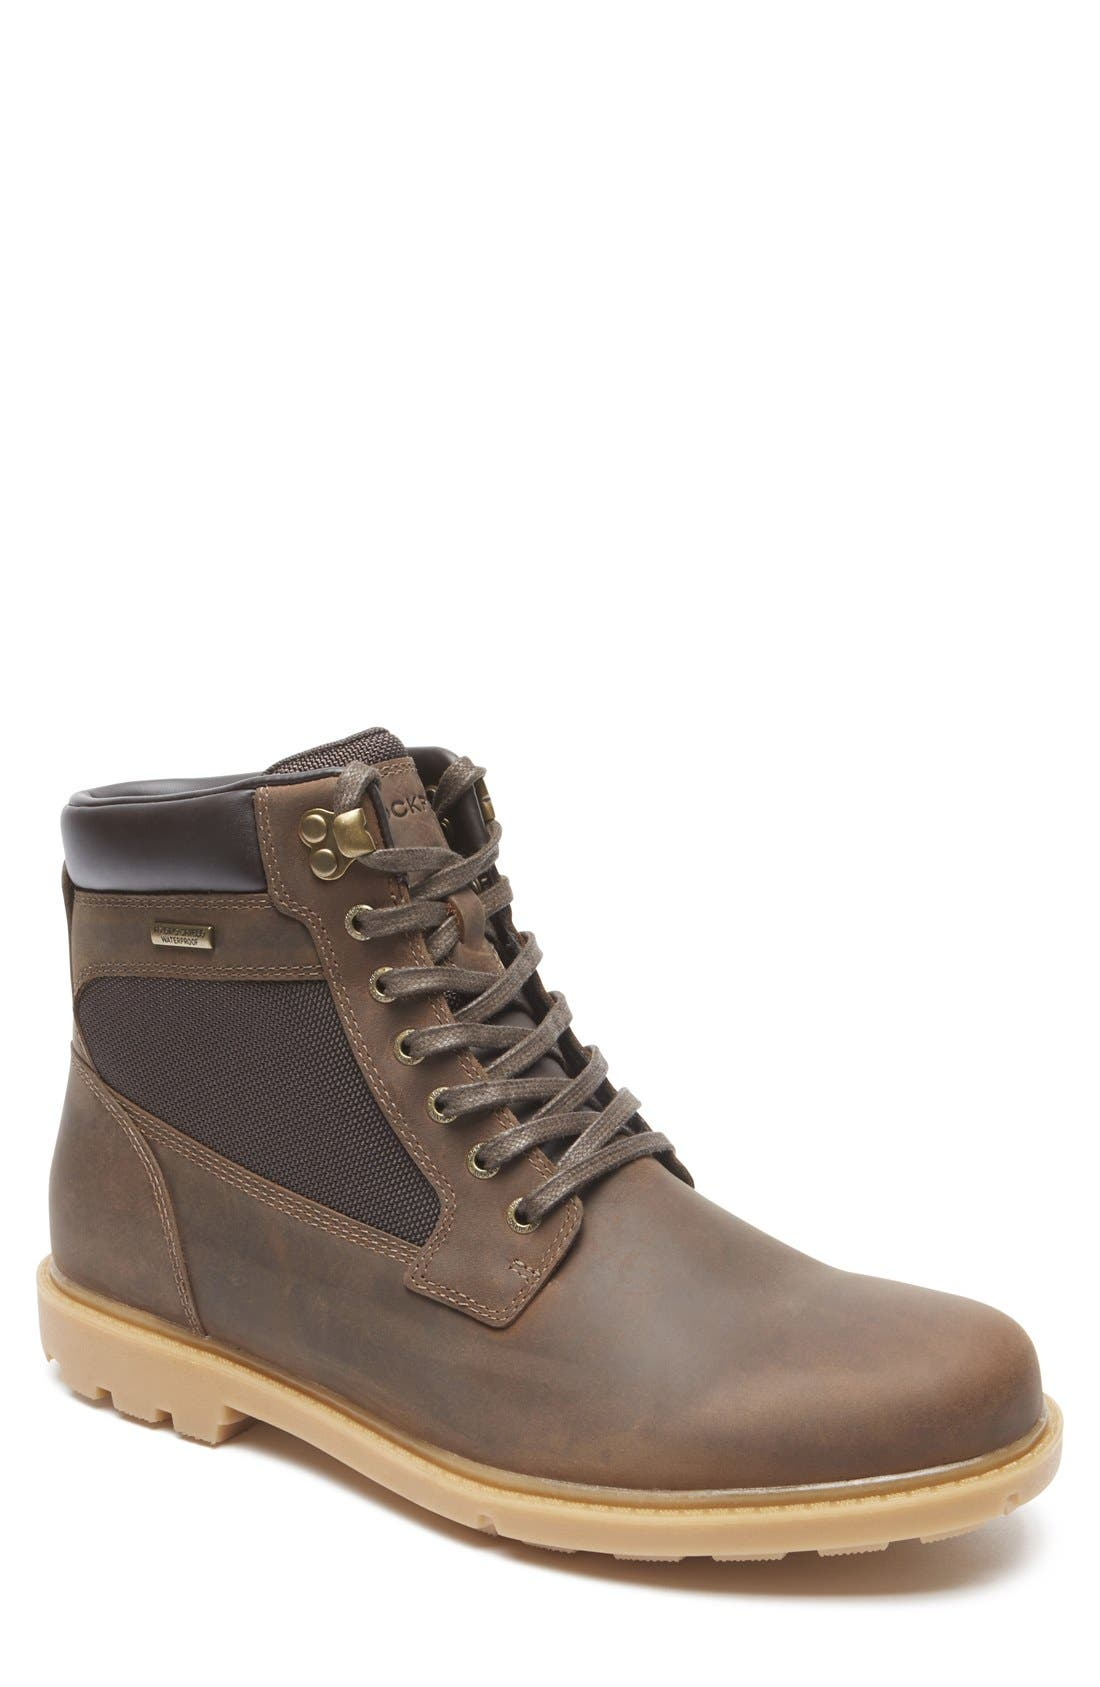 Main Image - Rockport 'Rugged Bucks High' Waterproof Boot (Men)